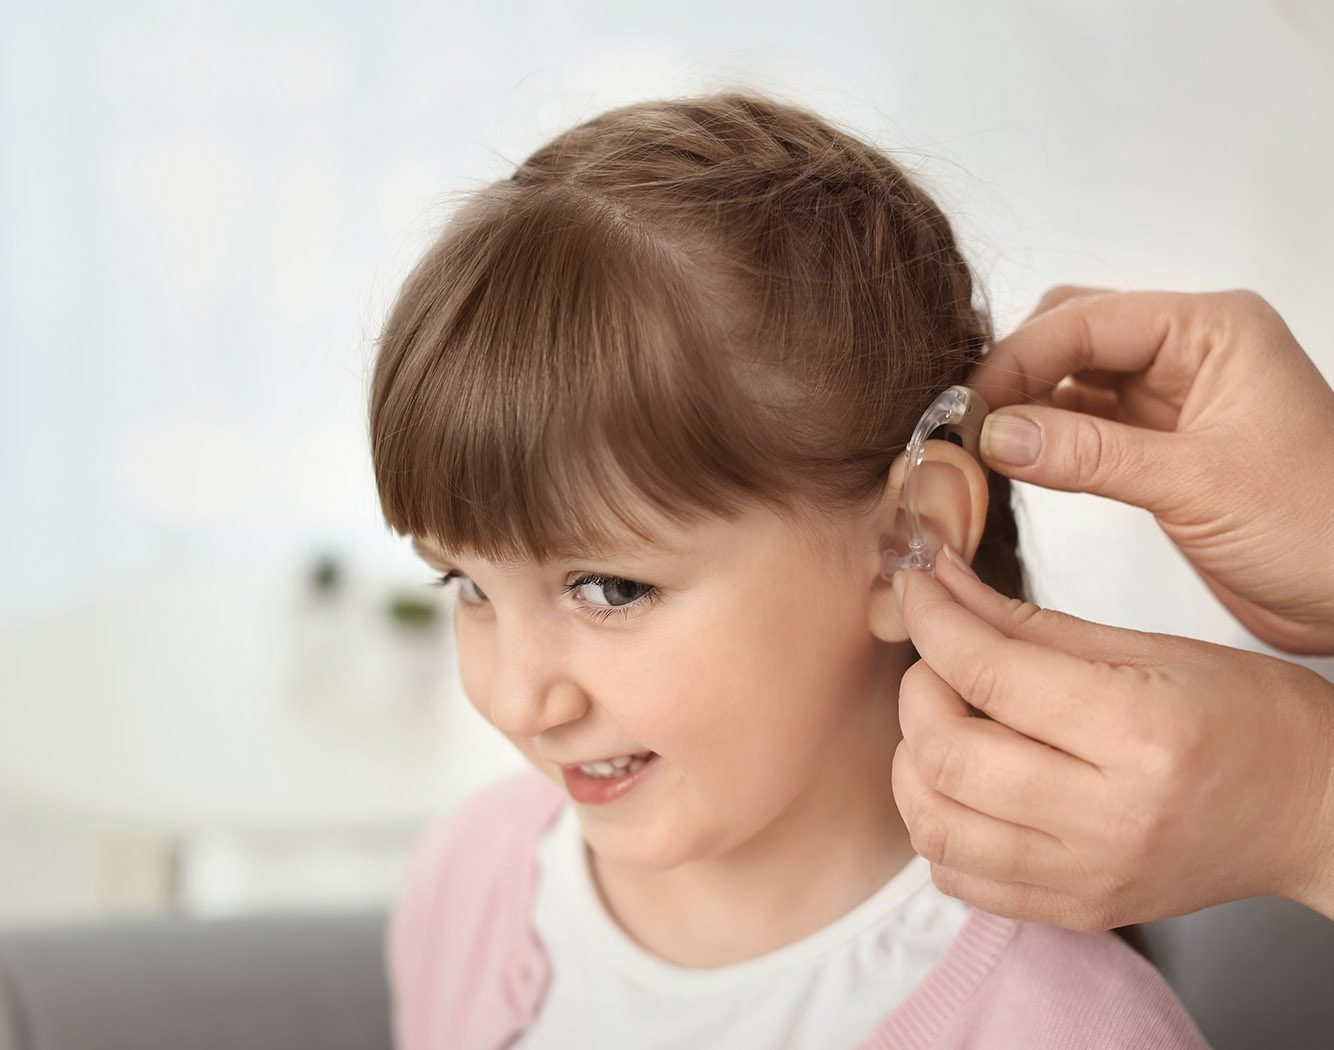 Childrens Hearing Aids Essex